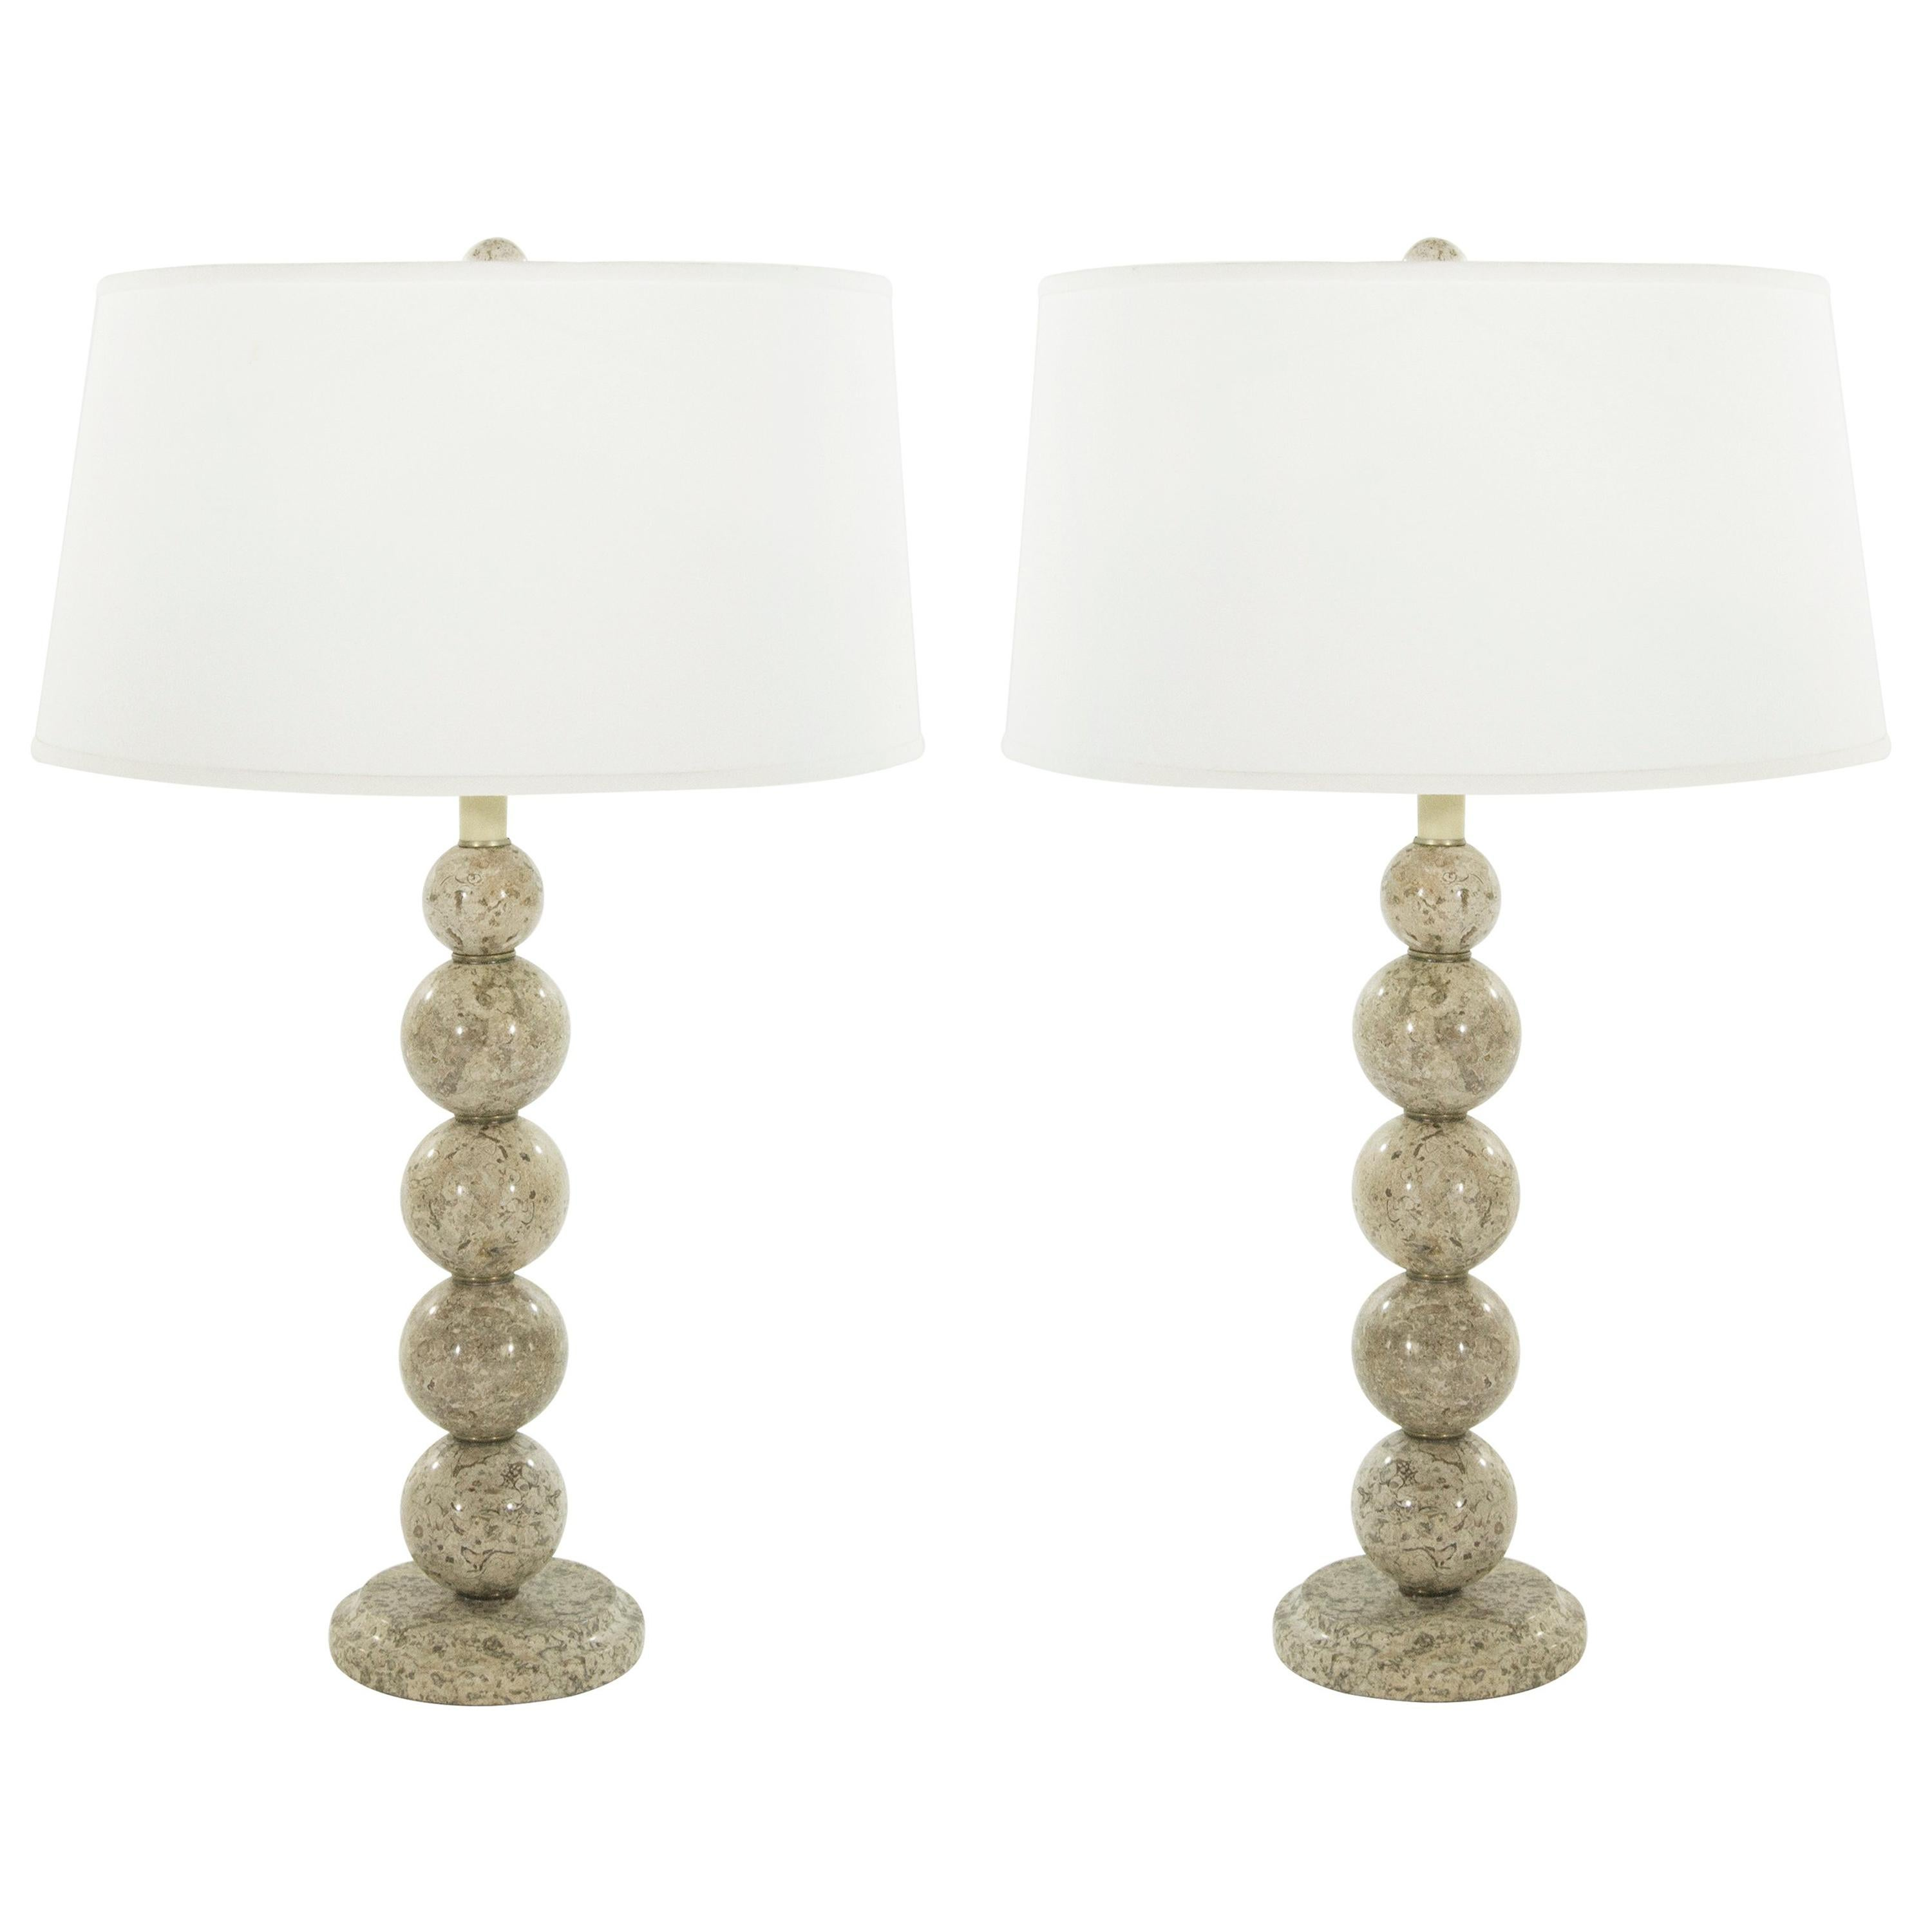 Stacked Travertine Spheres Table Lamps, 1970s